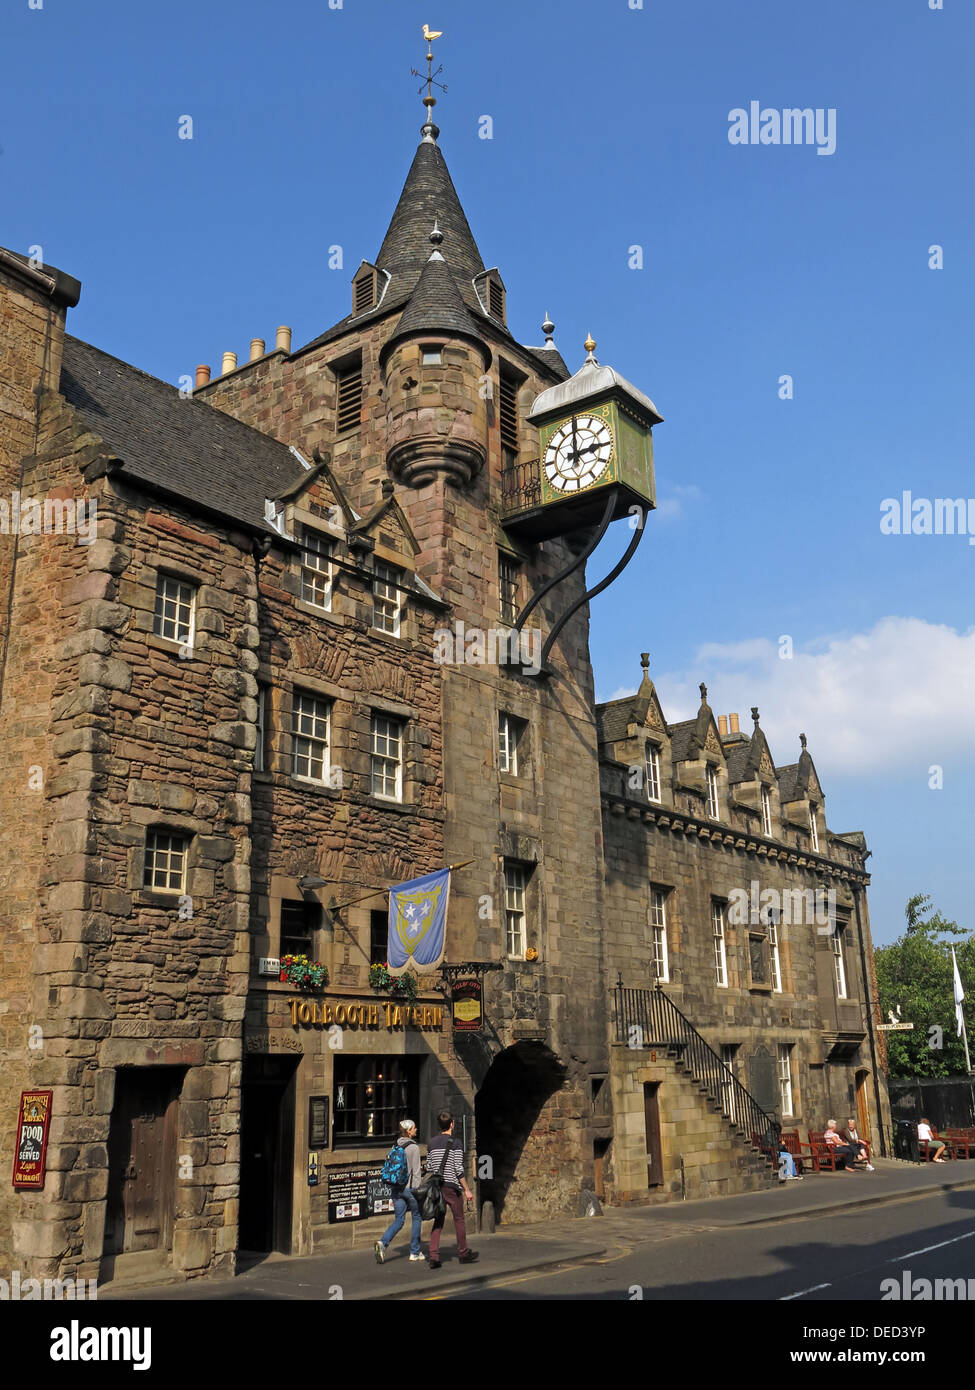 EH1,Scottish,Scot,scots,independance,independence,Tollbooth,Tavern,Clock,Royal,Mile,time,tower,turret,turrit,historic,canongate,cannongate,canon,gate,summer,blue,sky,stone,building,traditional,architecture,entry,entrance,bar,bars,pub,pubs,green,clock,tolbuth,gaol,where,judicial,torture,and,execution,Gotonysmith,Pretorio,burgi,street,summer,blue,sky,took,place,Famous,inmates,held,in,the,old,Thomas,Aikenhead,bus,Archibald,Campbell,1st Marquis of Argyll tour Robert Balfour,5th Lord Balfour of Burleigh Deacon Brodie James Douglas,4th Earl of Morton John Fian James Graham,1st Marquis of Montrose Alexander Home,3rd Lord Home Archibald Johnston,Lord,Warriston,Alexander,Peden,Captain,John,Porteous,Agnes,Sampson,Major,Weir,tourist,haunt,haunts,tourist,tourists,tourism,travel,building,architecture,wide,shot,angle,Buy Pictures of,Buy Images Of,Scotlands History,Scotlands History